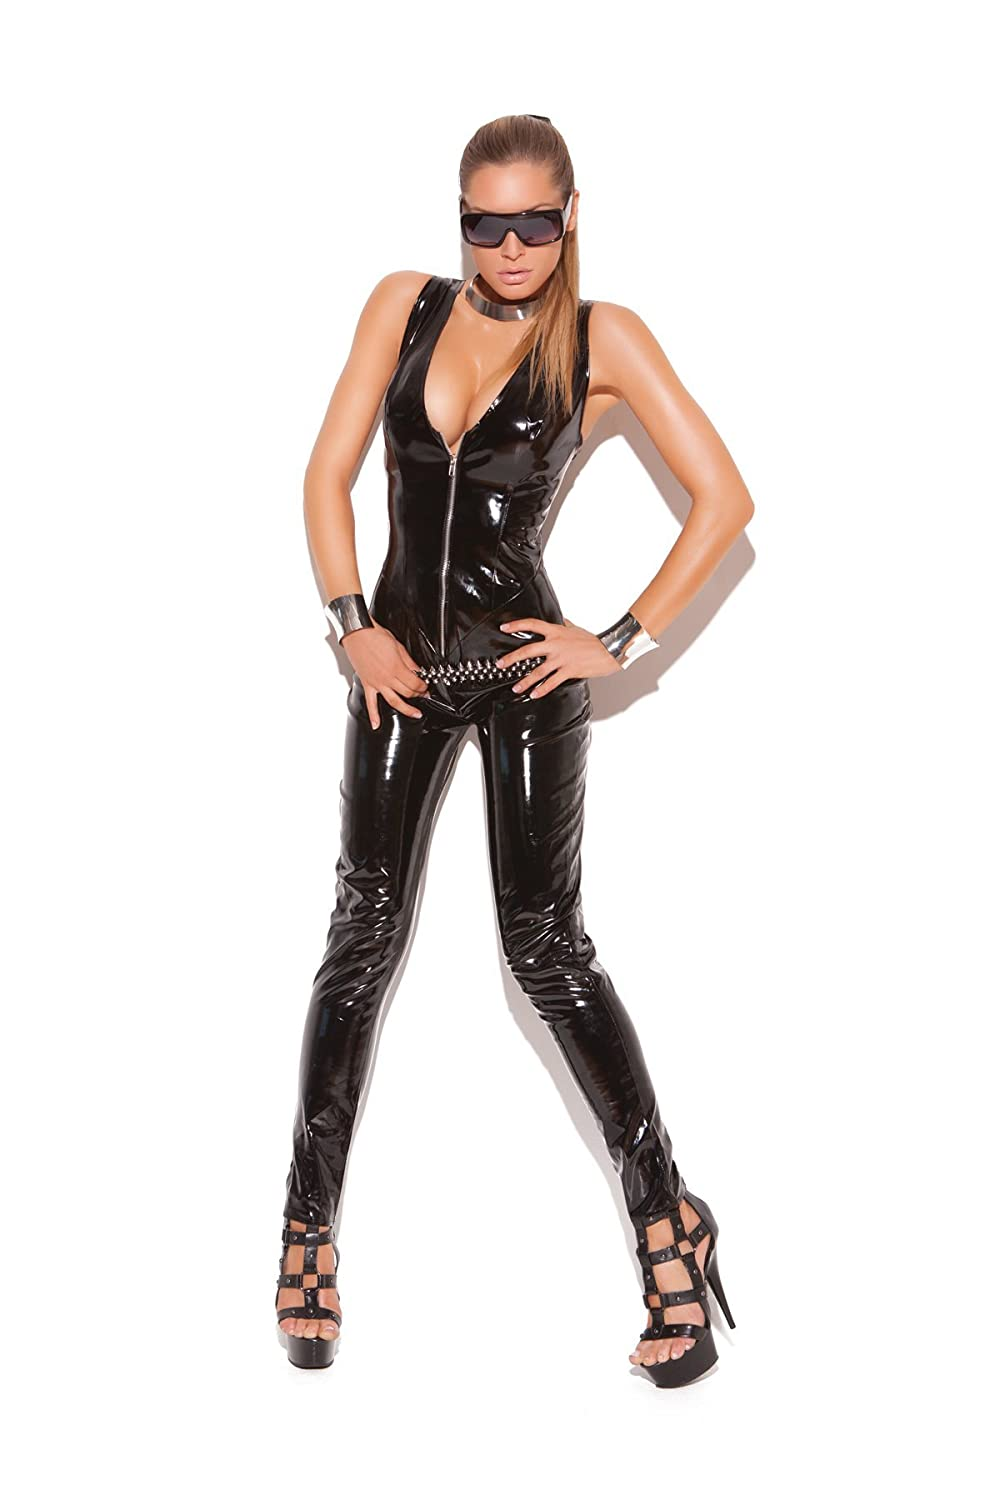 Elegant Moments Women's Deep V-Vinyl Cat Suit With Zipper Front, Black, Large V9216